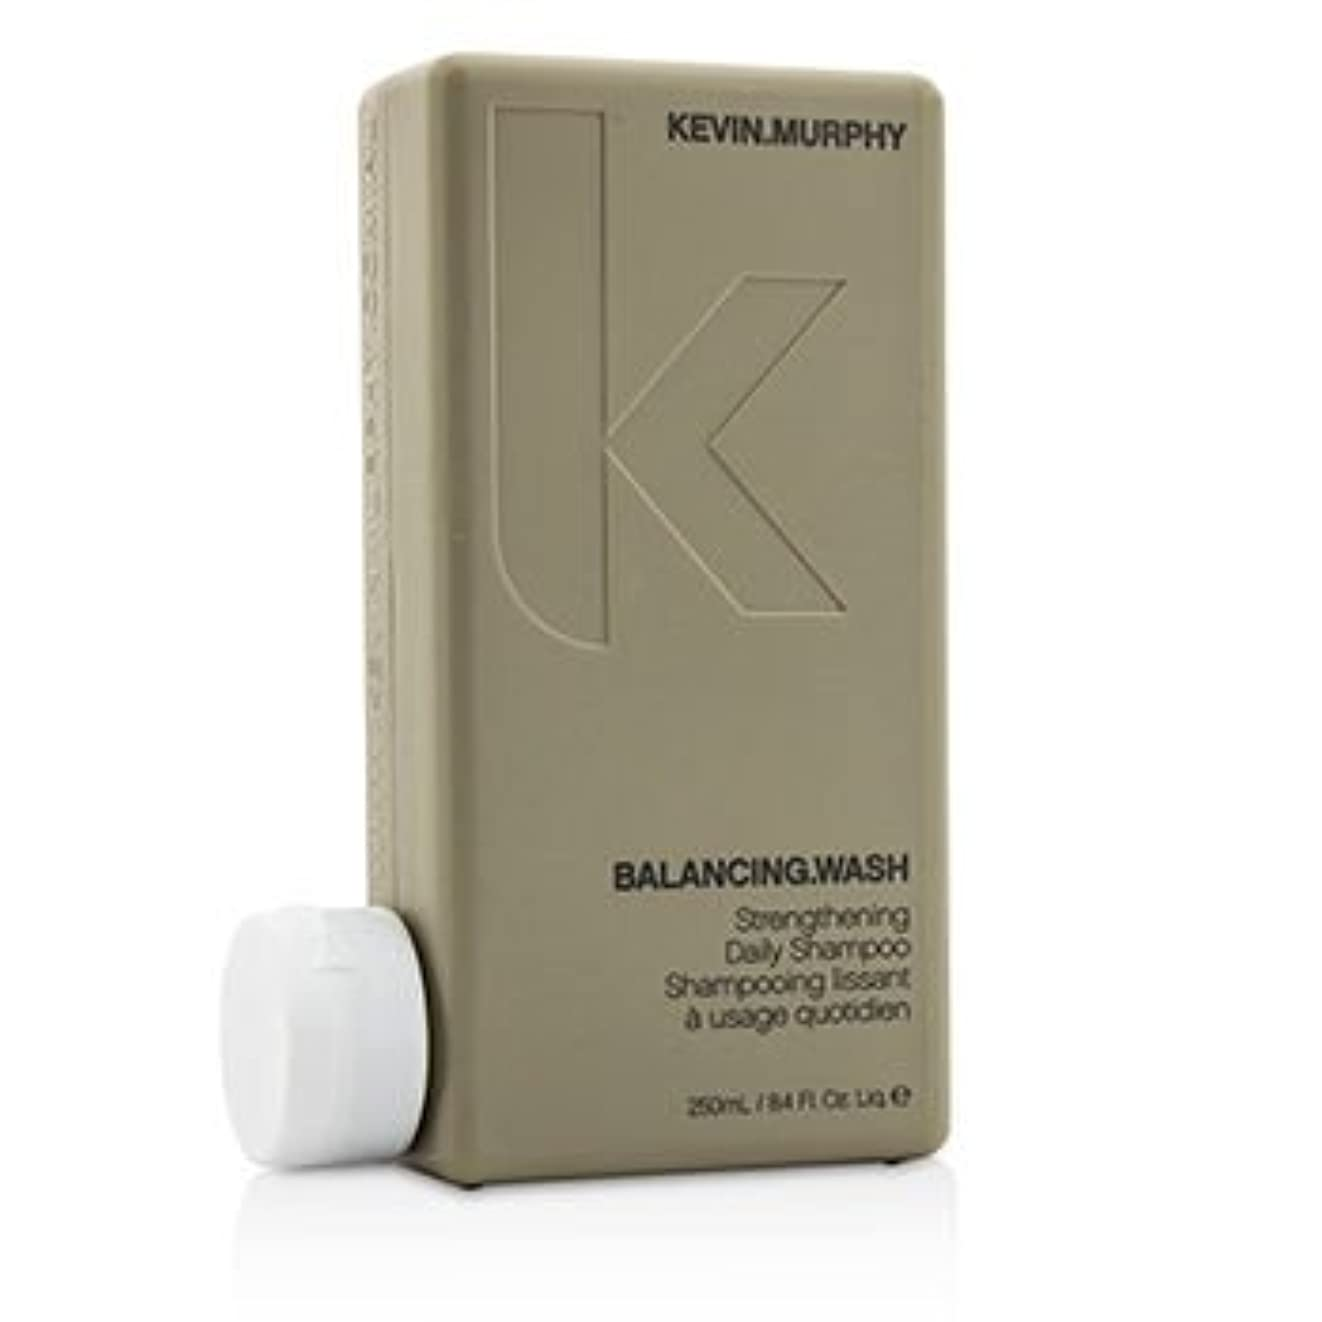 シーフードハイランドカレッジ[Kevin.Murphy] Balancing.Wash (Strengthening Daily Shampoo - For Coloured Hair) 250ml/8.4oz